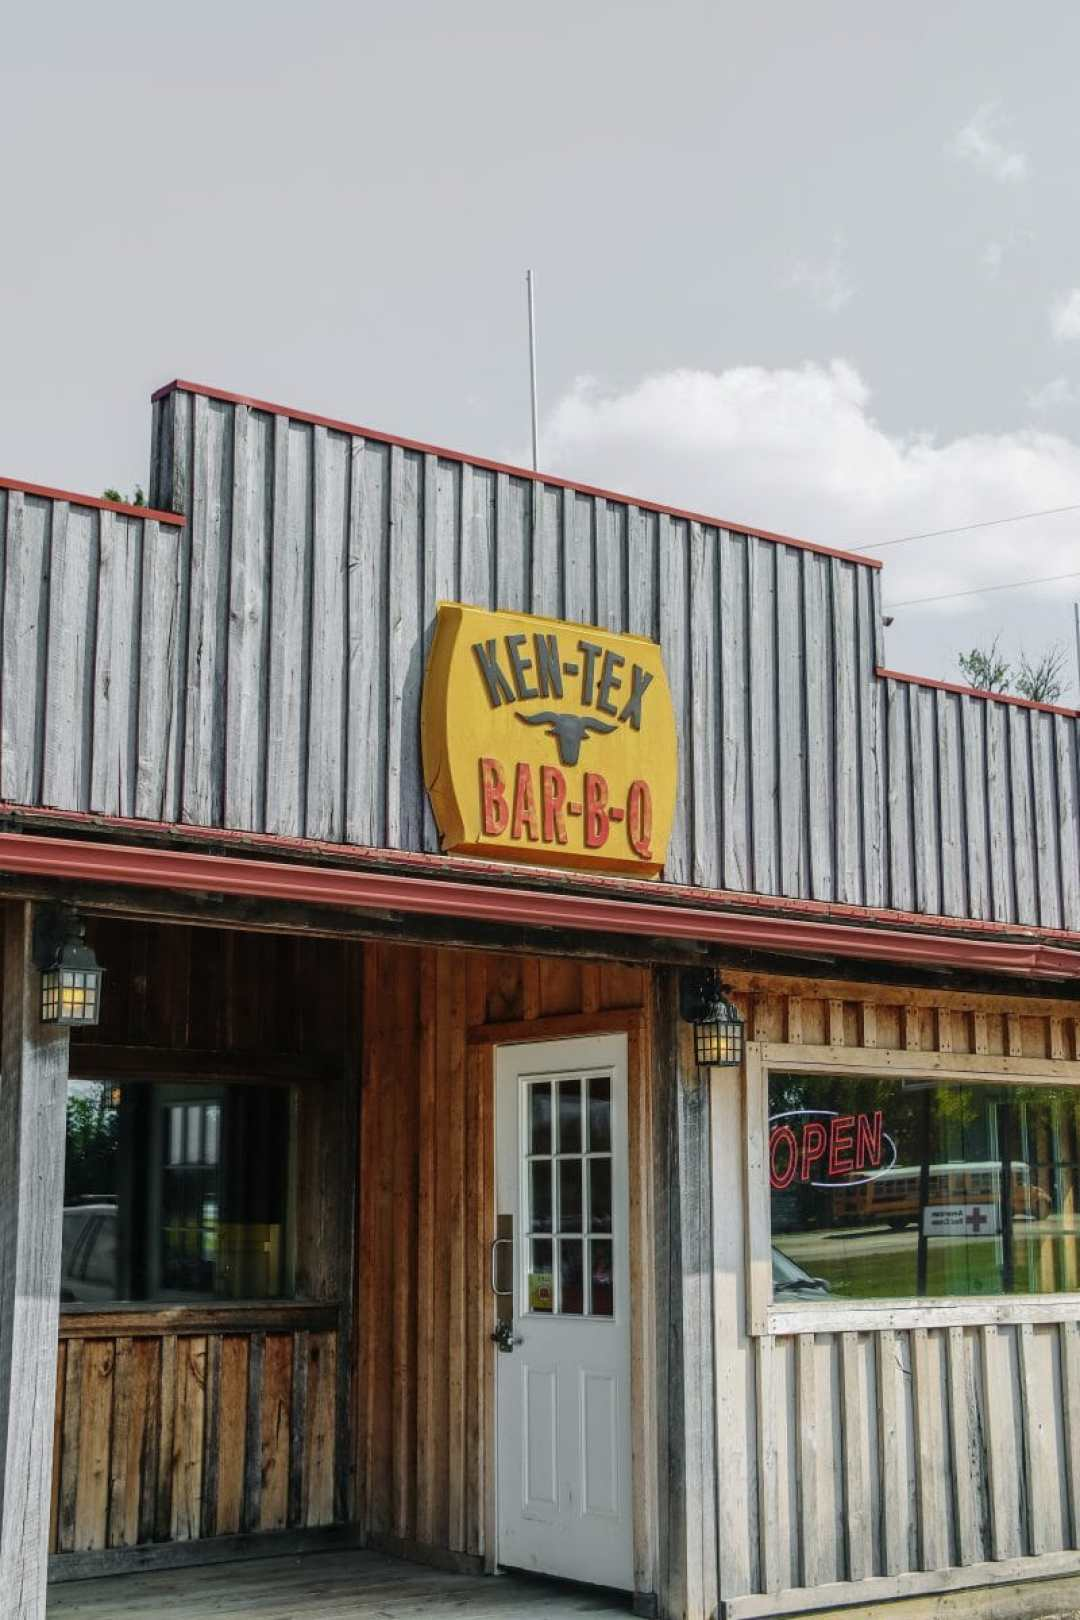 The Shelby County KY BBQ Trail - Where to Eat BBQ in Shelby County, Kentucky by JC Phelps of JCP Eats